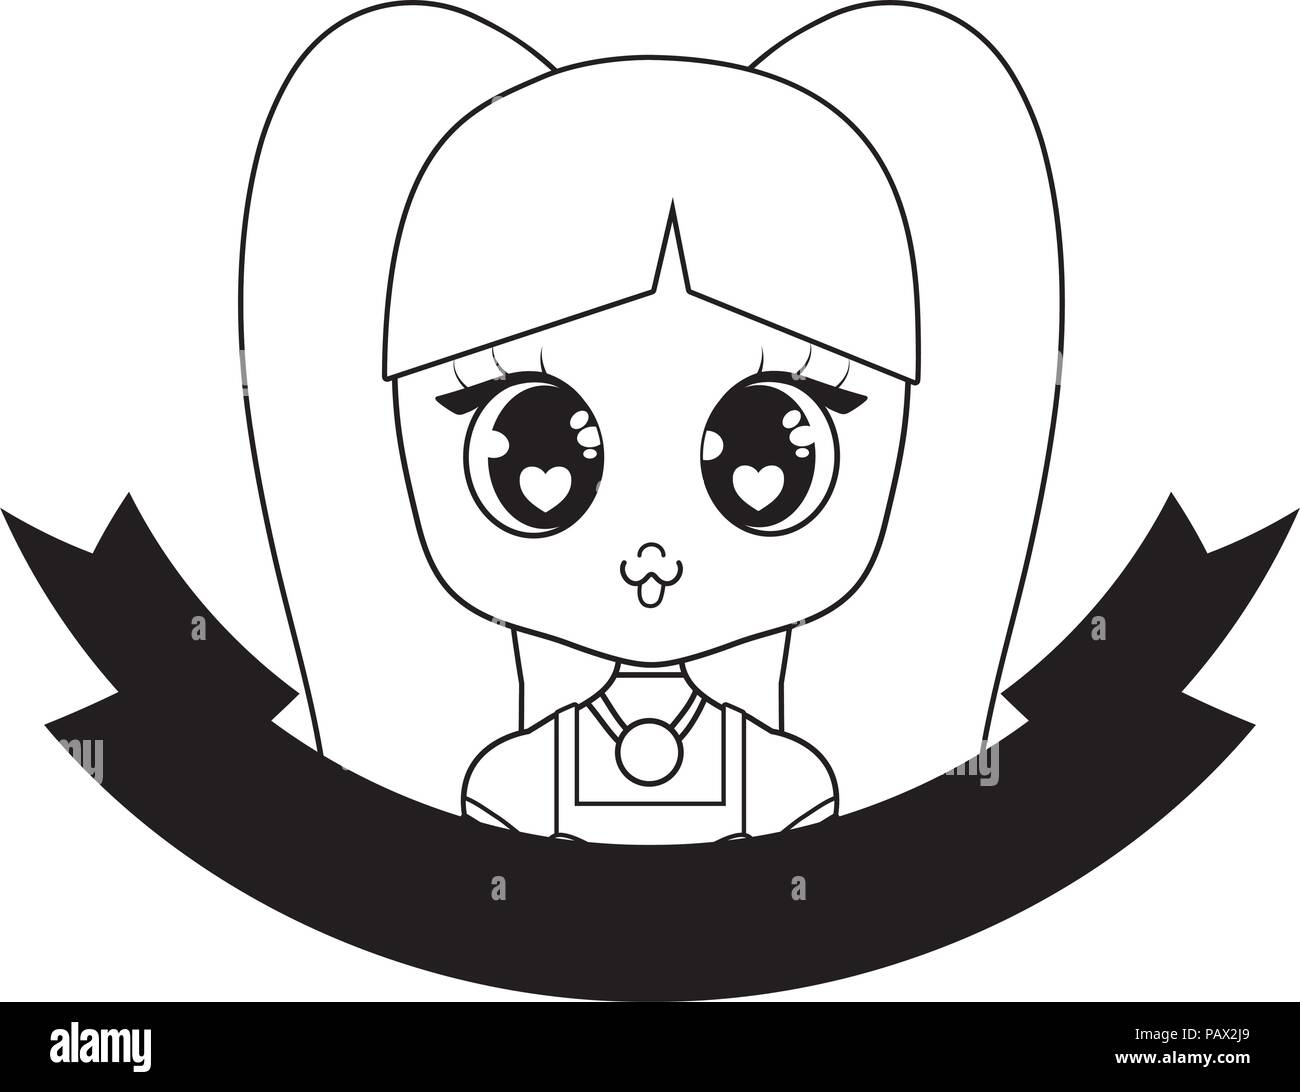 Emblem With Cute Asian Girl Icon And Decorative Ribbon Over